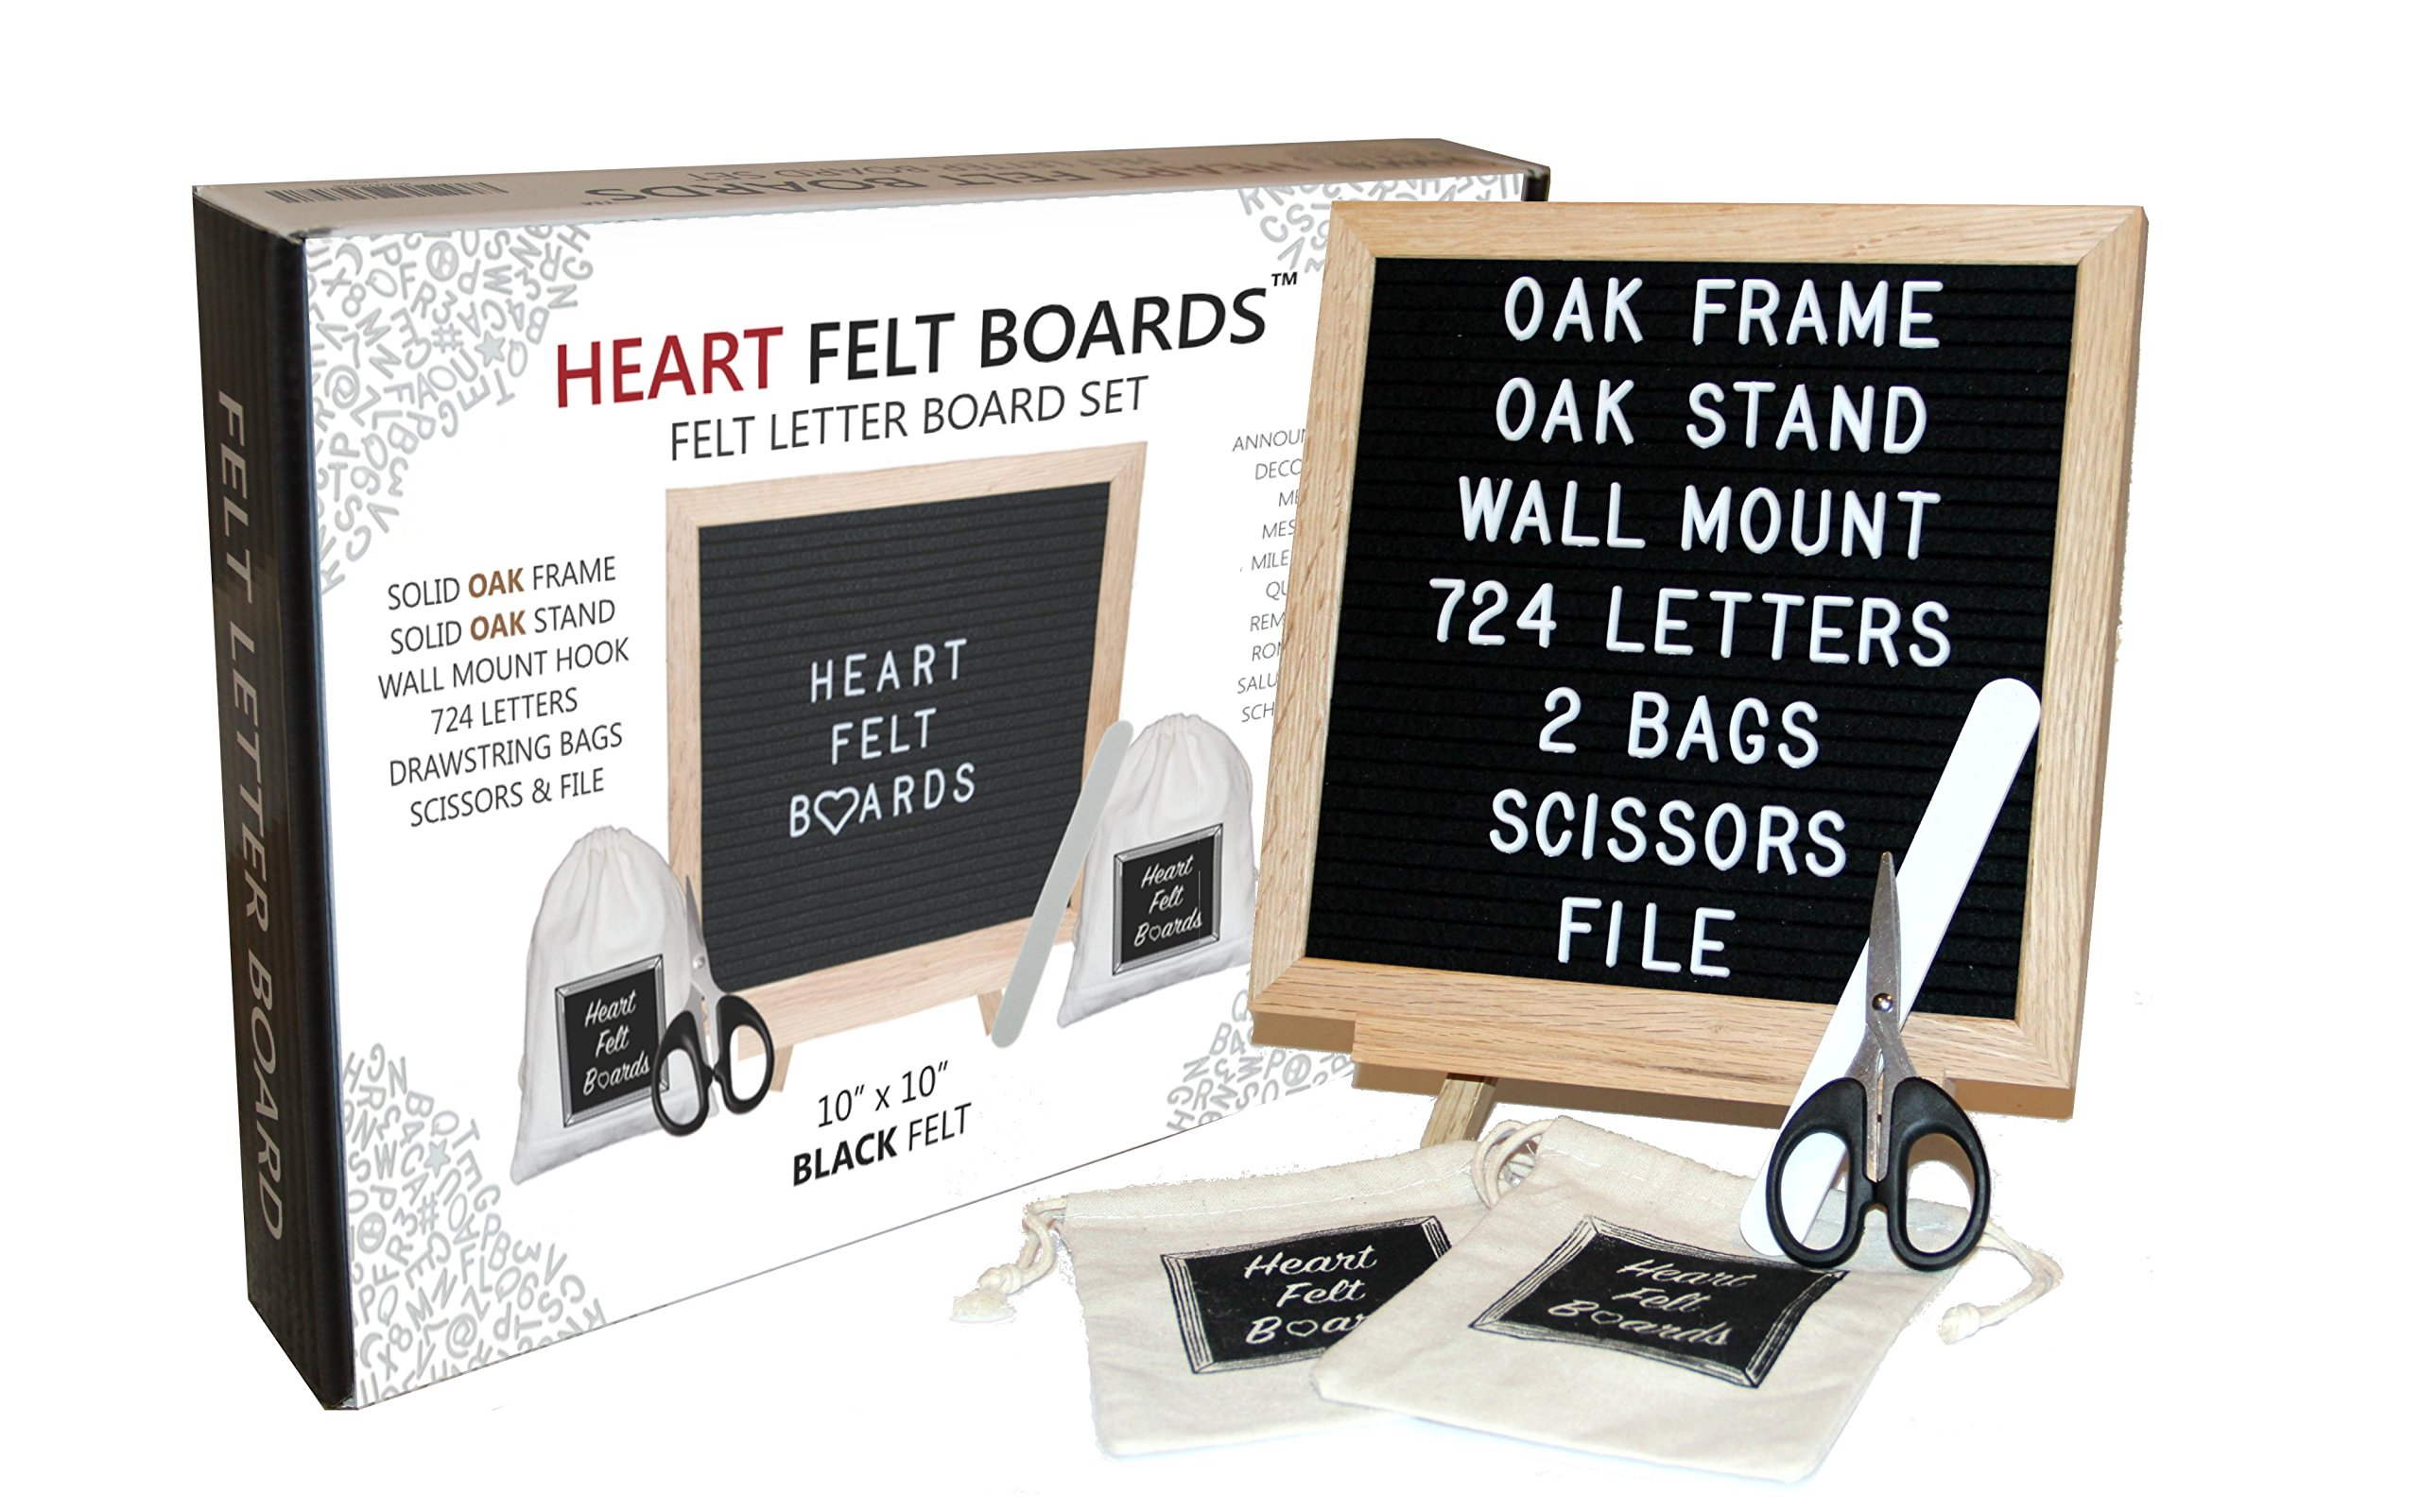 Felt Letter Board 10x10 - Oak Wood Frame Oak Tripod Stand - 724 White Letters - 2 Storage Bags Scissors File - Wall Mount Hanger - Emojis Symbols Numbers - Wood Changeable Message Display Sign (BLACK)